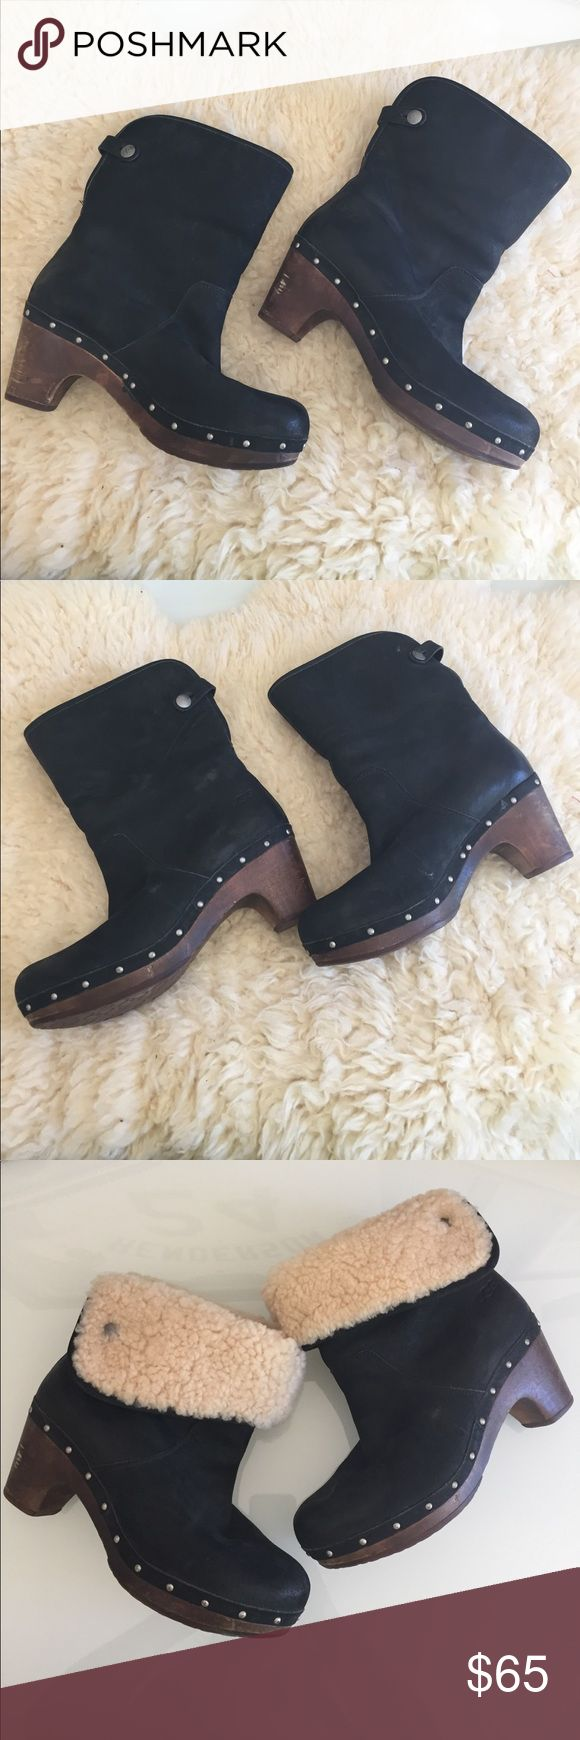 Ugg Lynnea Boot Clog with Fur Awesome pre worn condition can be styled up or down. Versatile booties! Some scuffing on heel, shown. UGG Shoes Ankle Boots & Booties